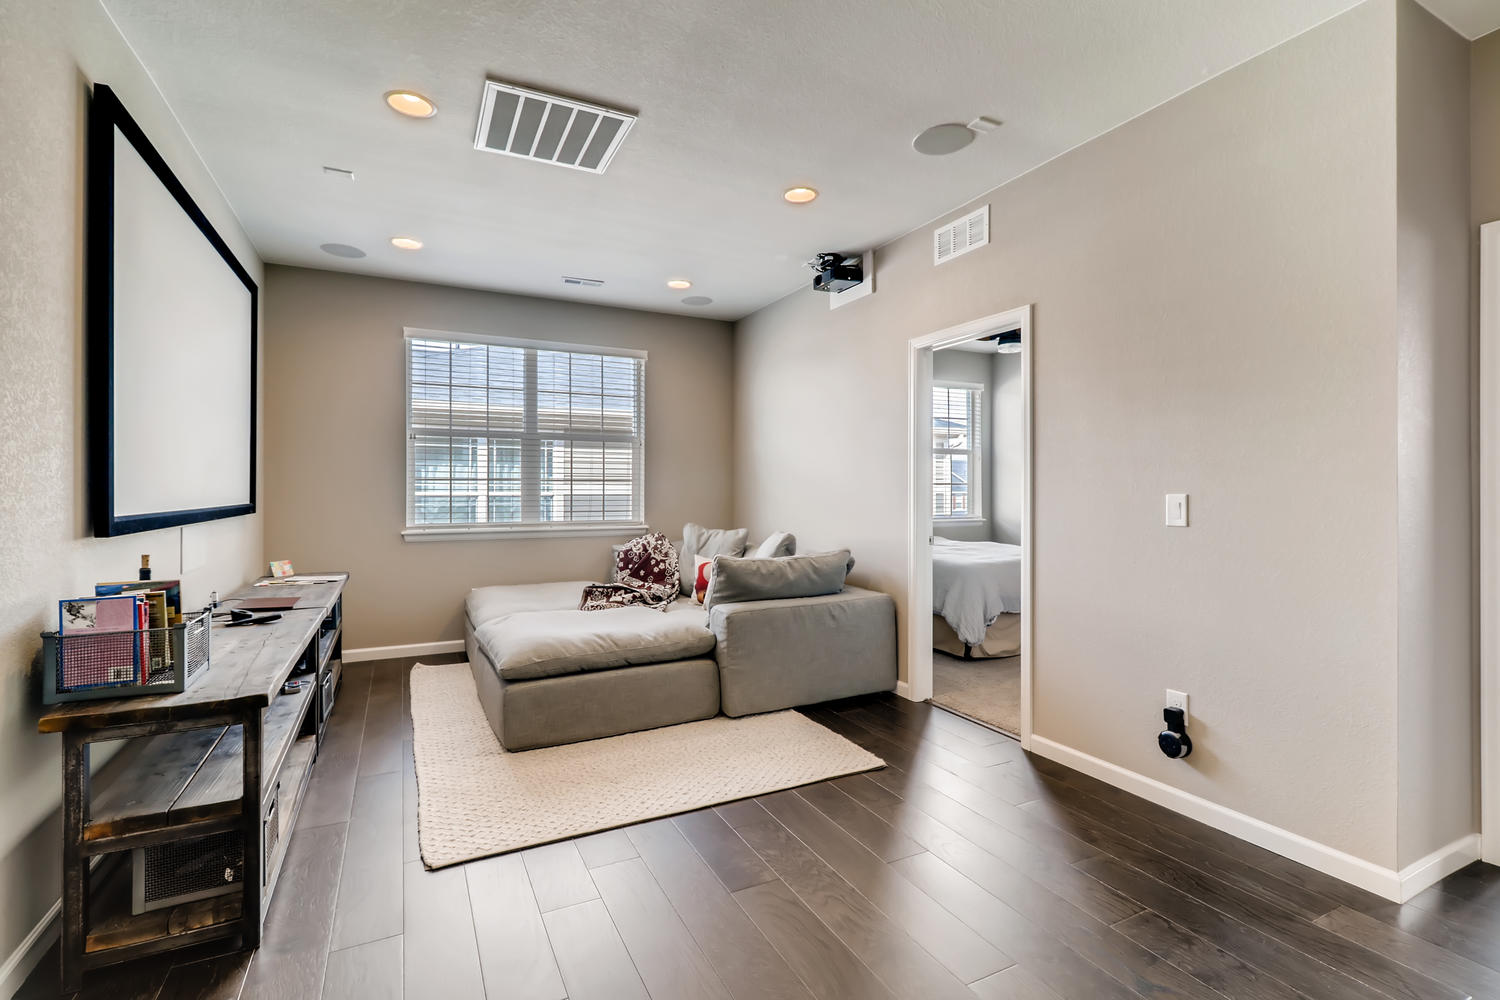 REAL ESTATE LISTING: 1029 Redbud Circle Loft & Home Theater